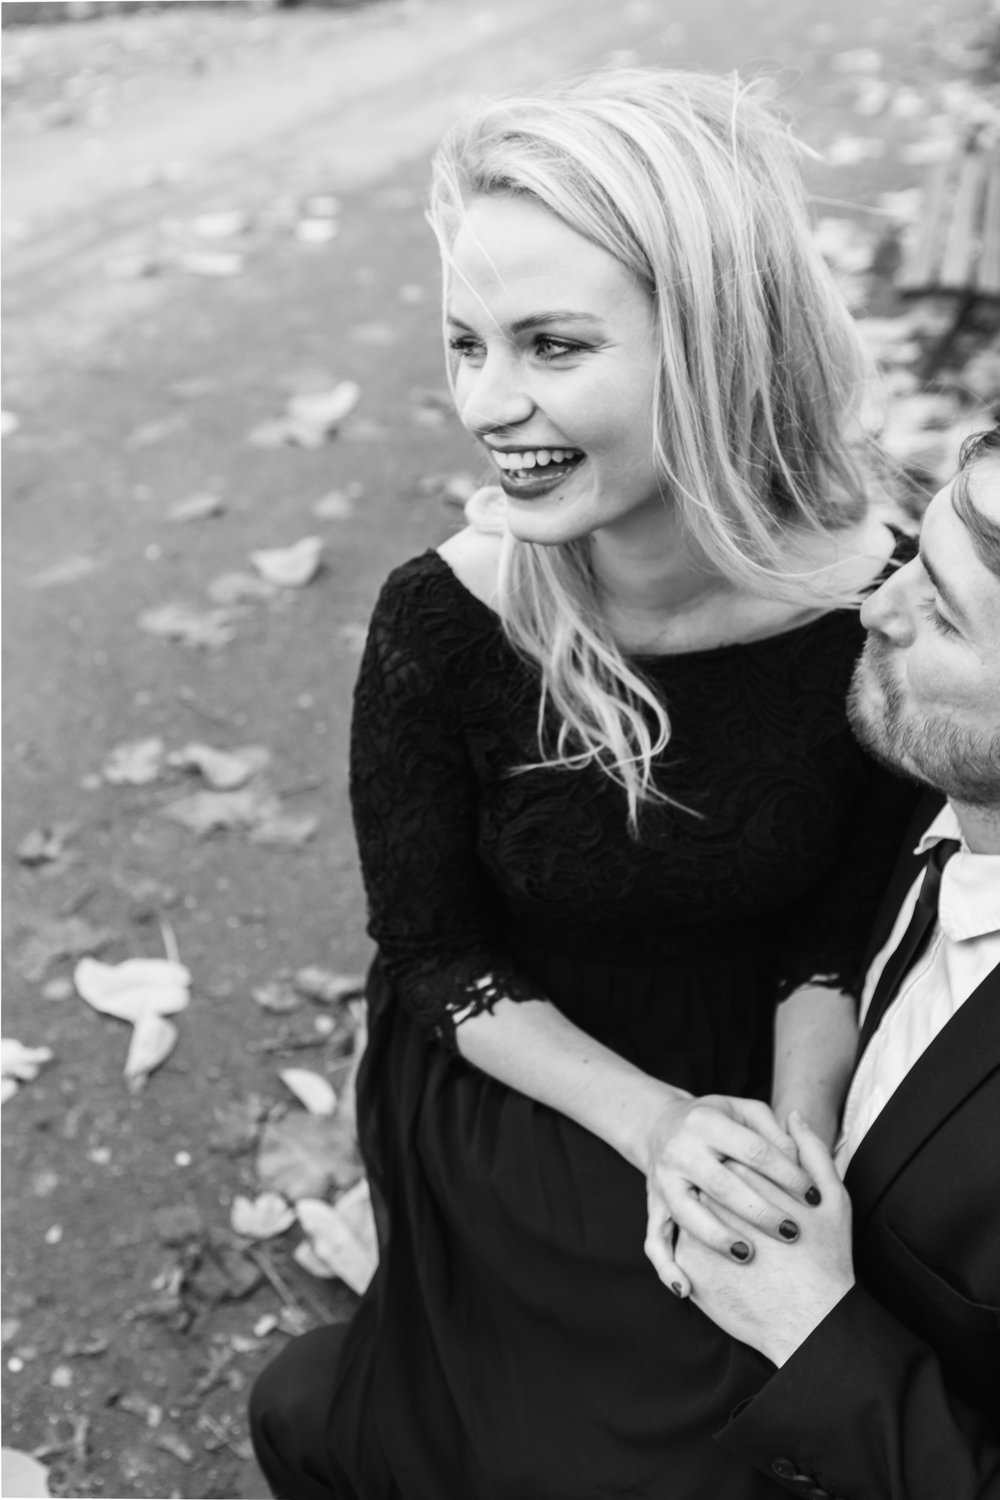 Couple engagement session portrait in black and white by the Eiffel Tower captured by Photographer in Paris Federico Guendel